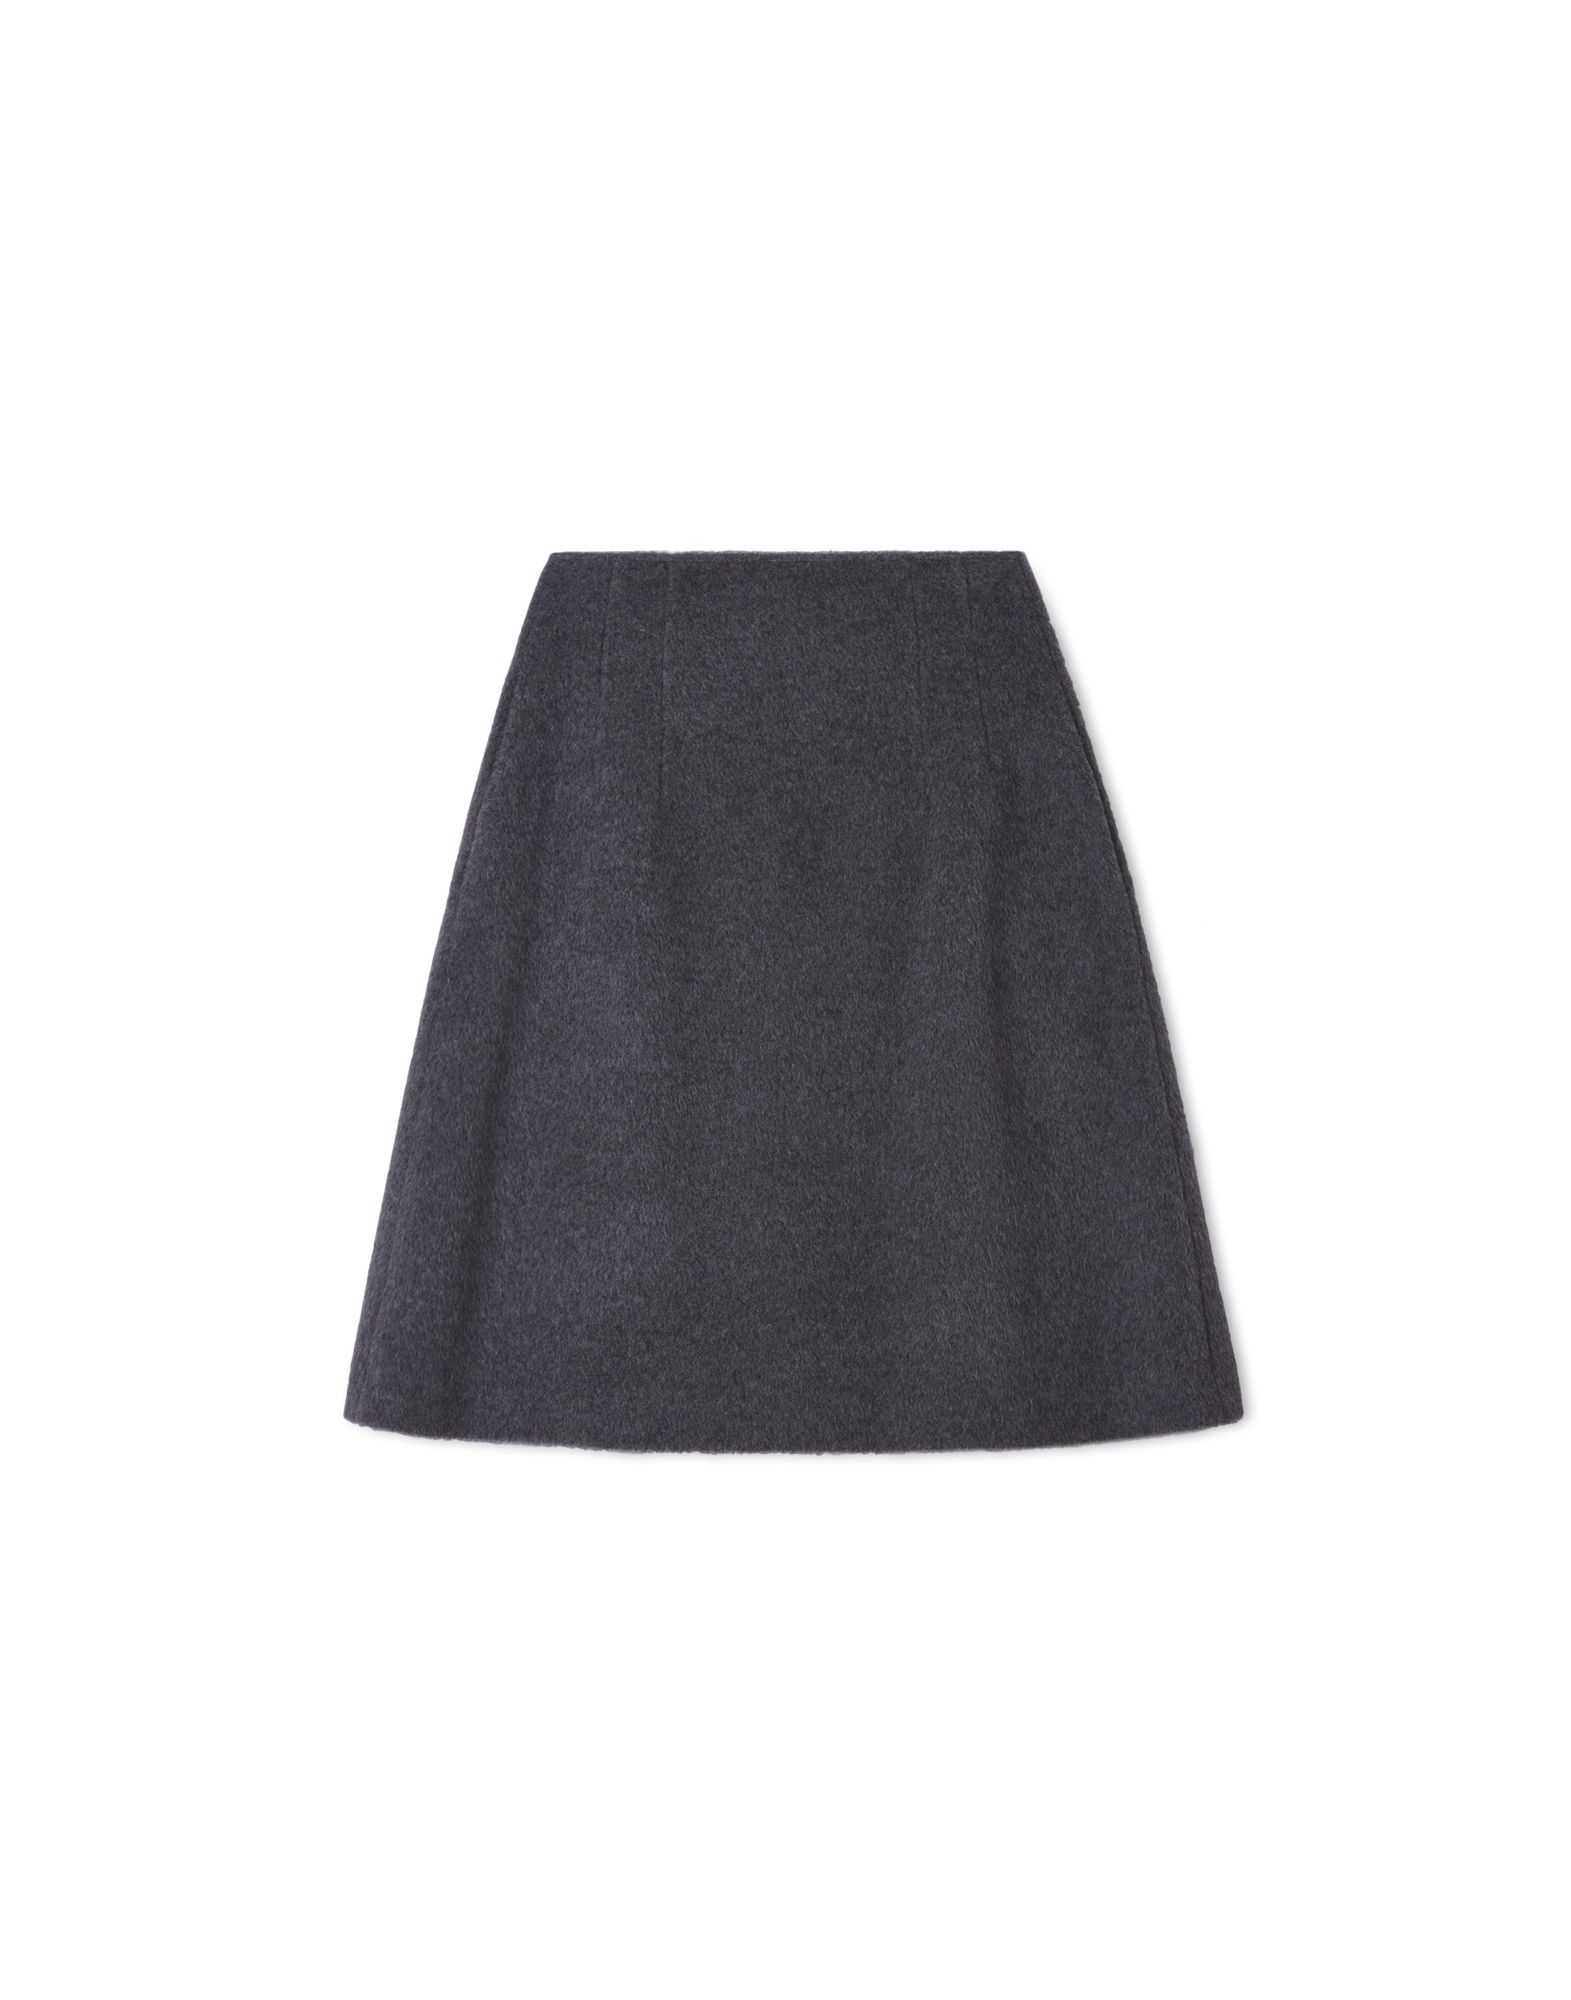 SKIRT - STEEL GREY